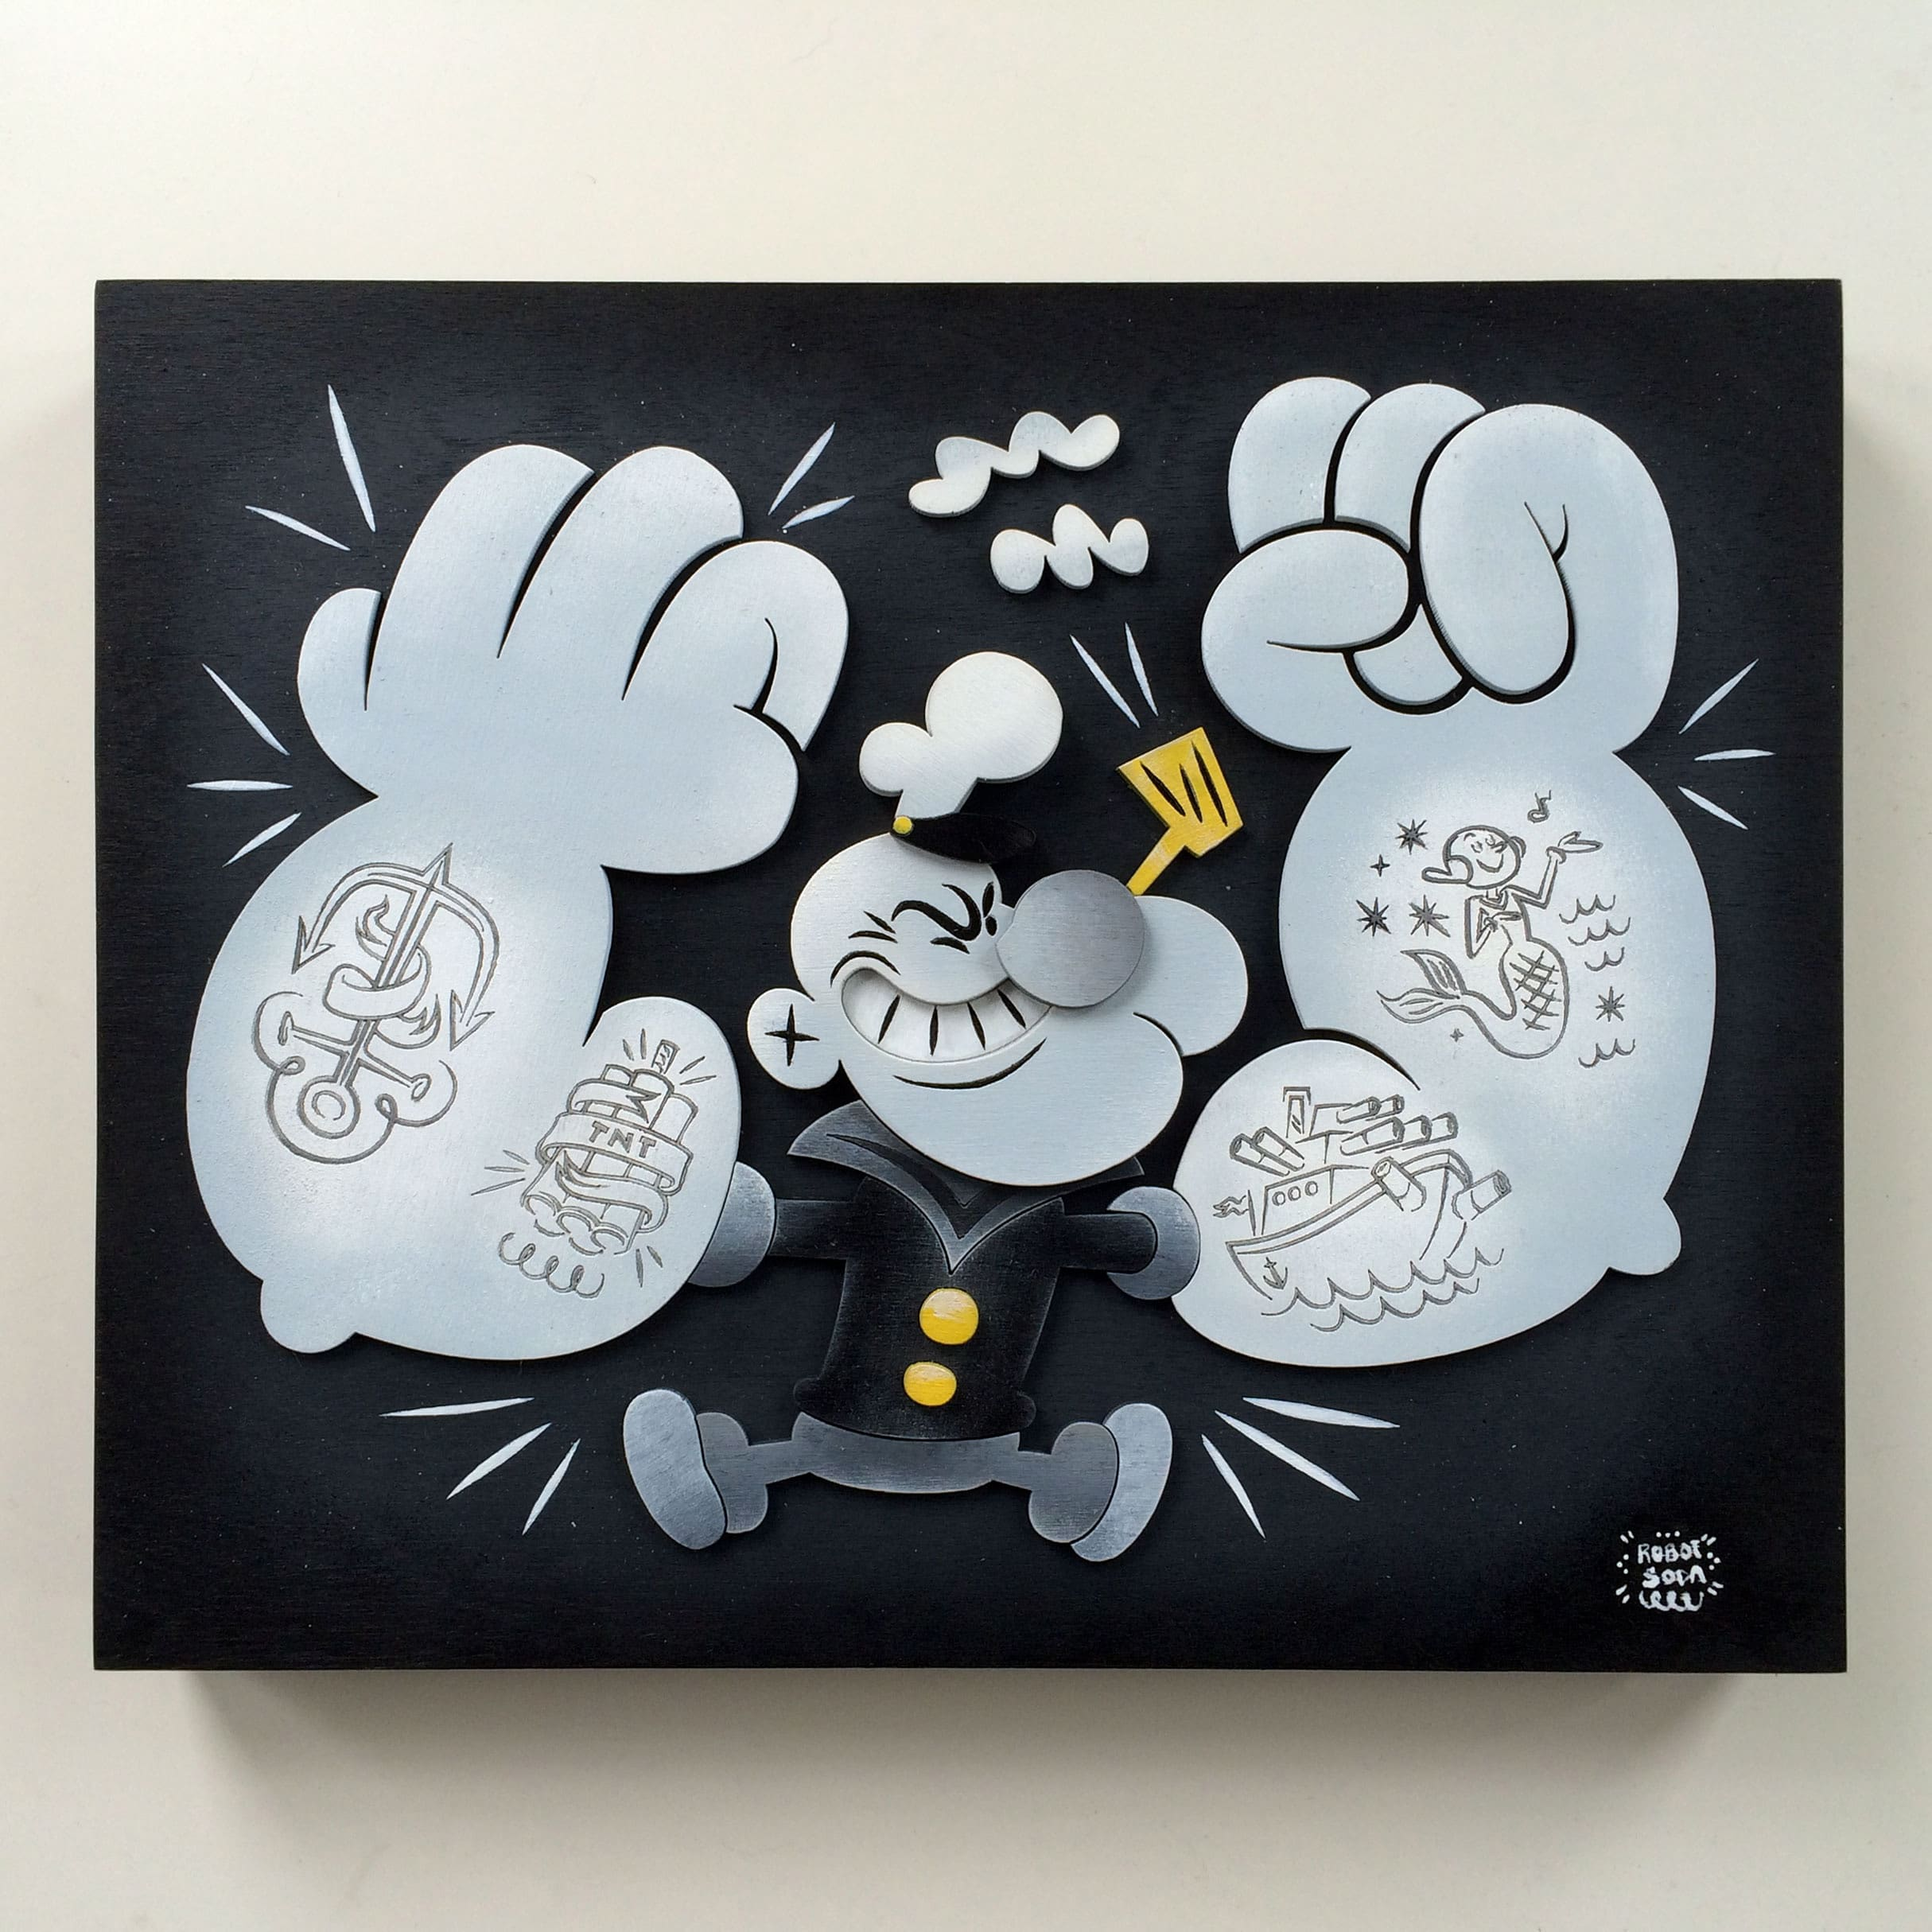 Popeye Tribute Art Show Print 4